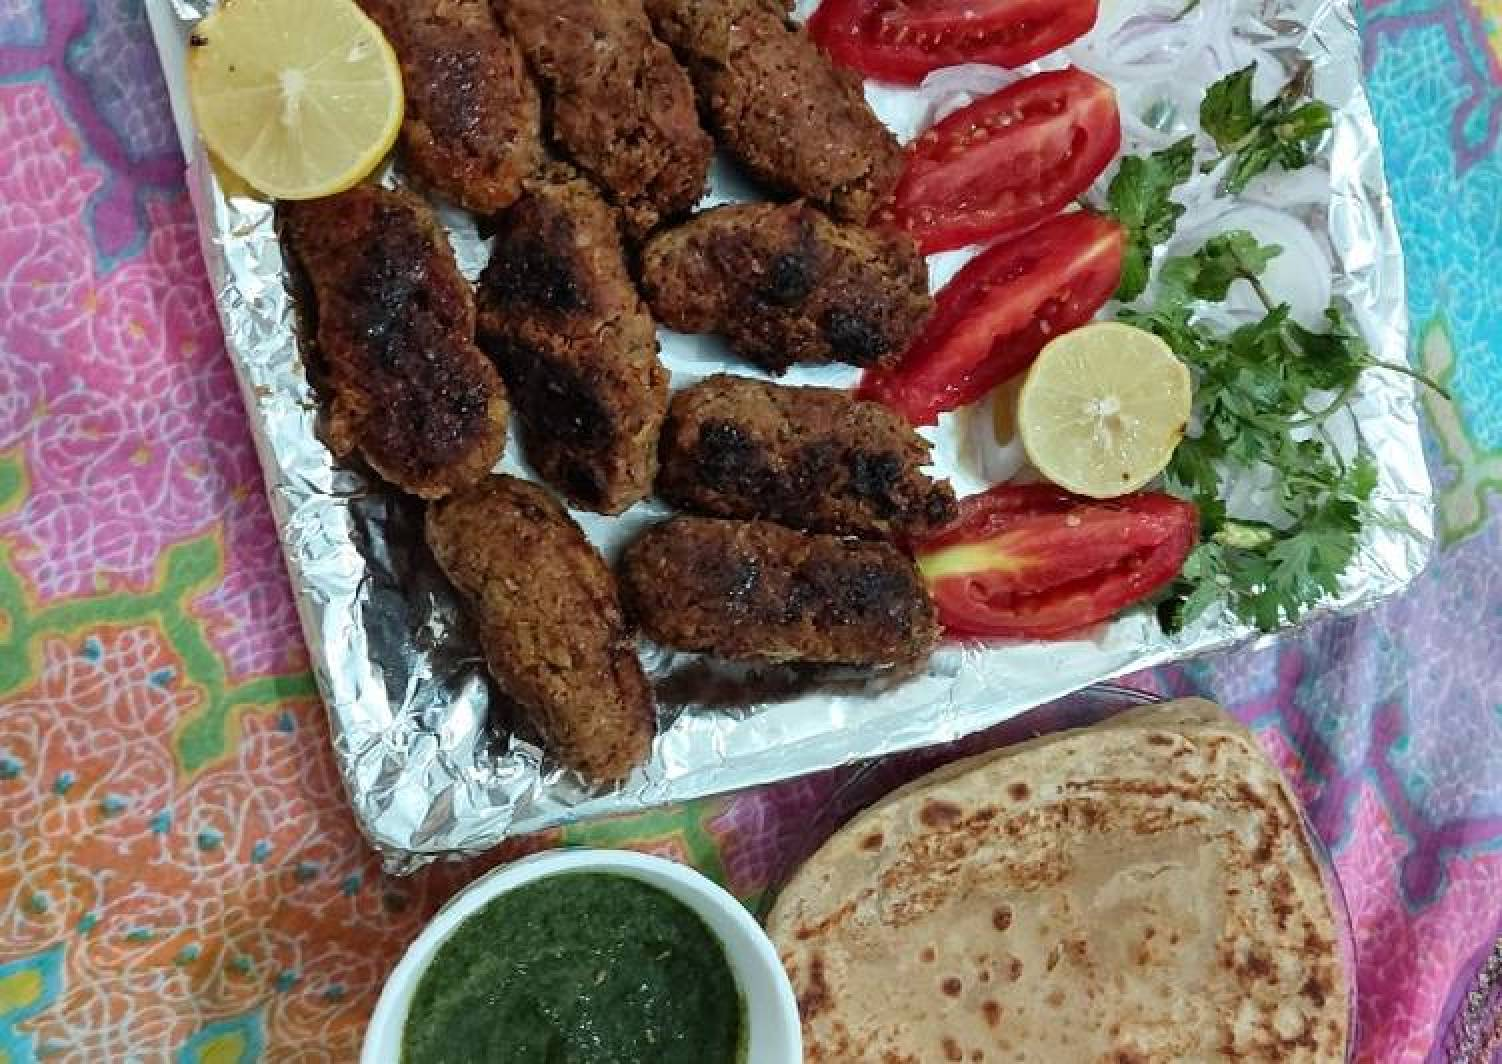 Mutton seekh kababs / smoking flavor/ mouth watering tasteful di